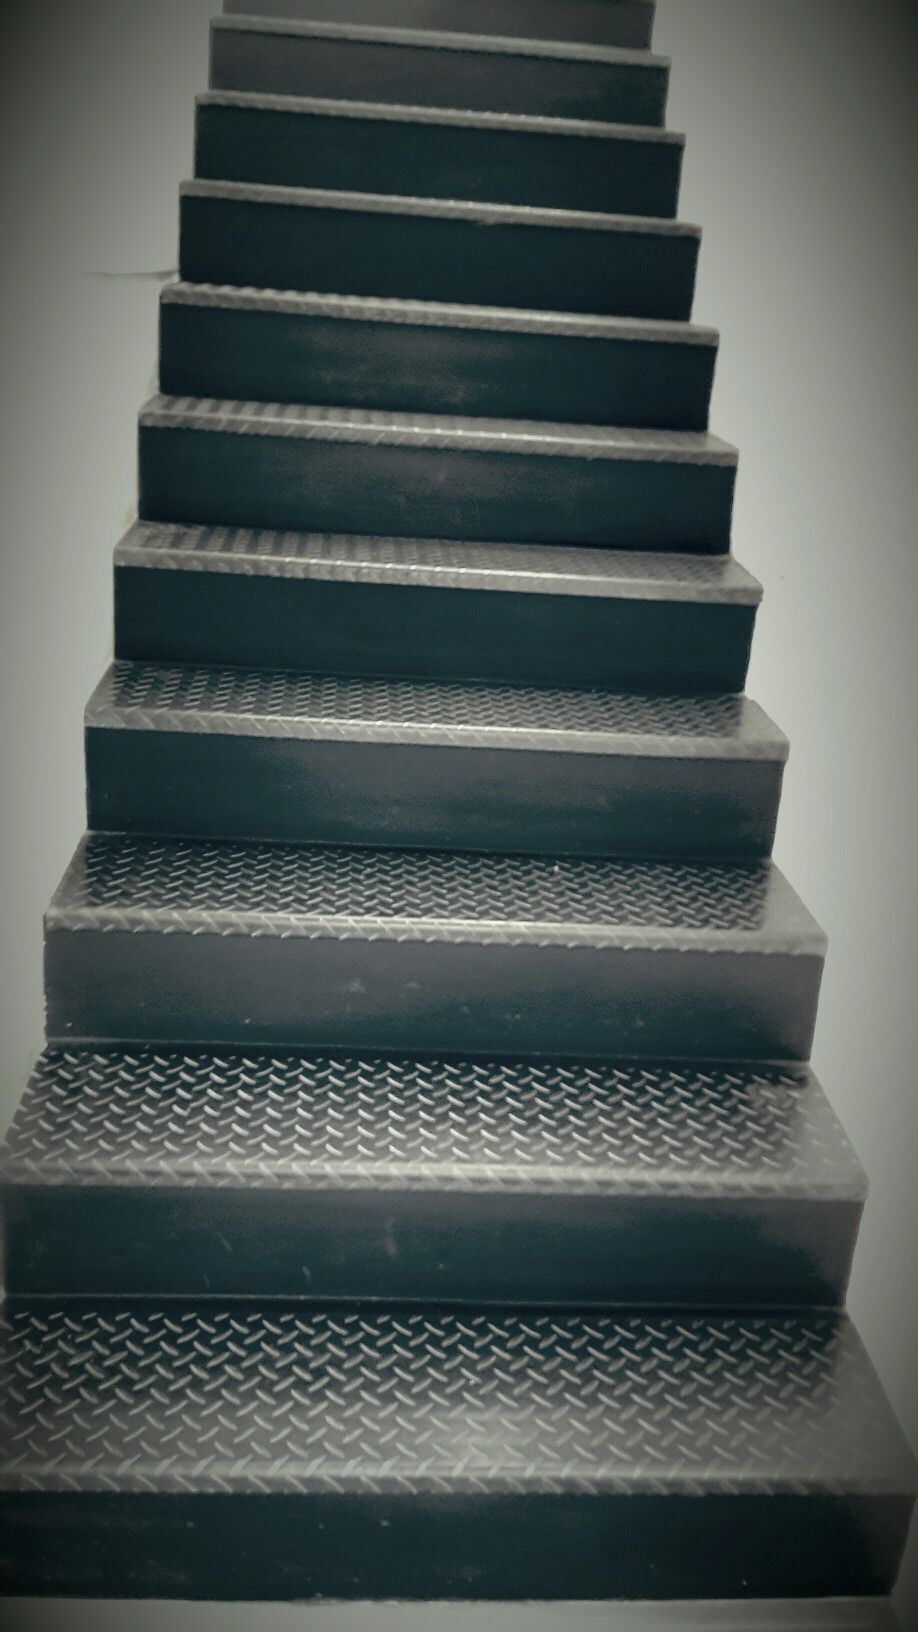 R stairs